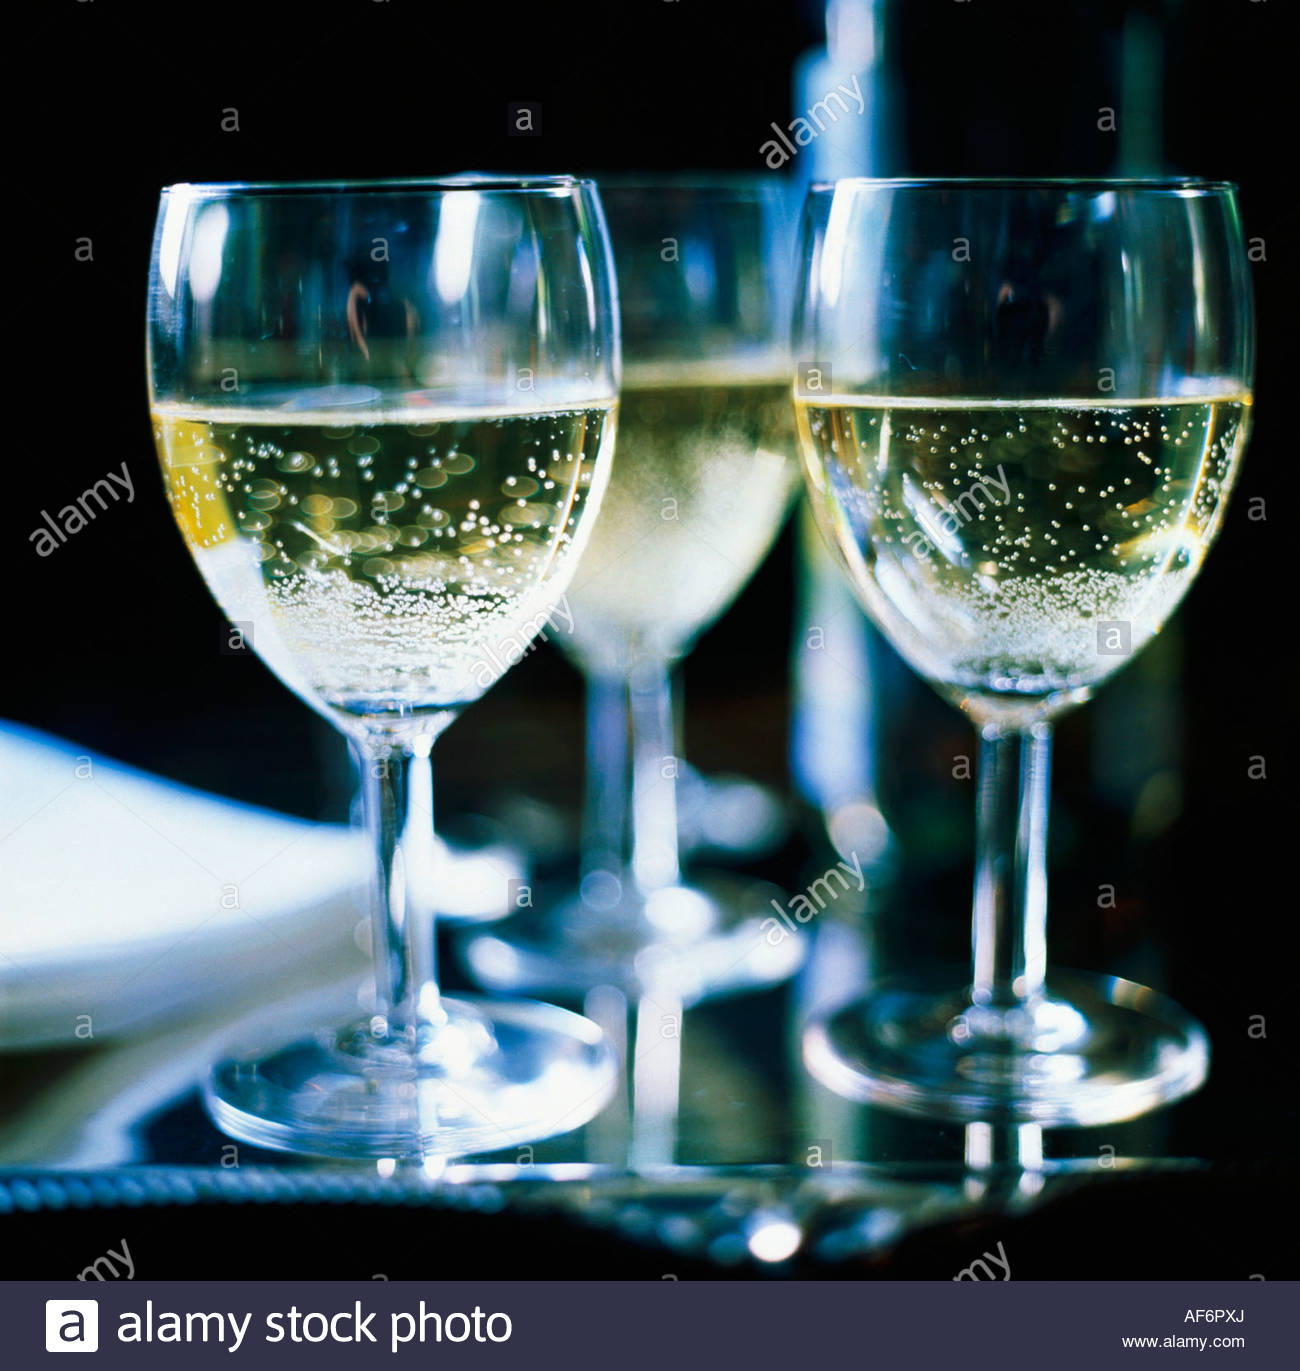 three-glasses-of-sparkling-white-wine-AF